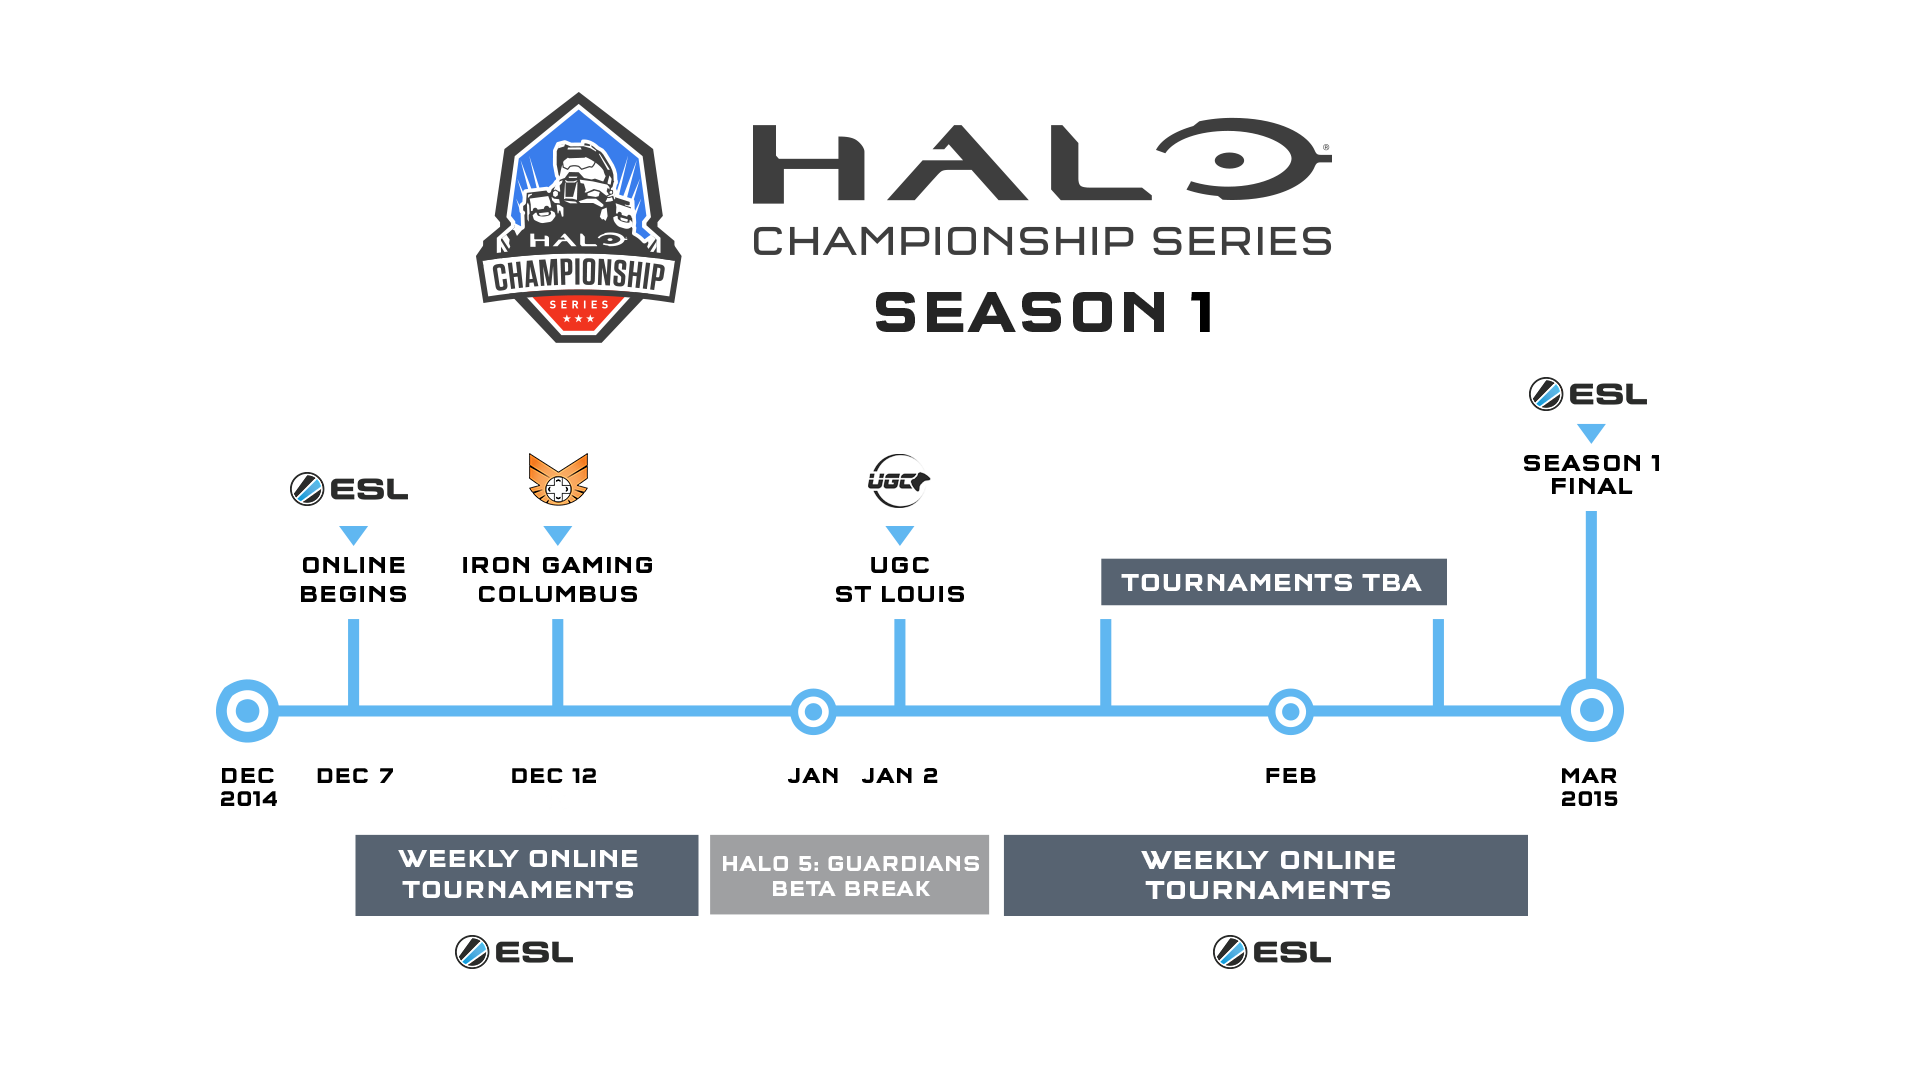 hcs-roadmap-season1-transparent-21f1aa91